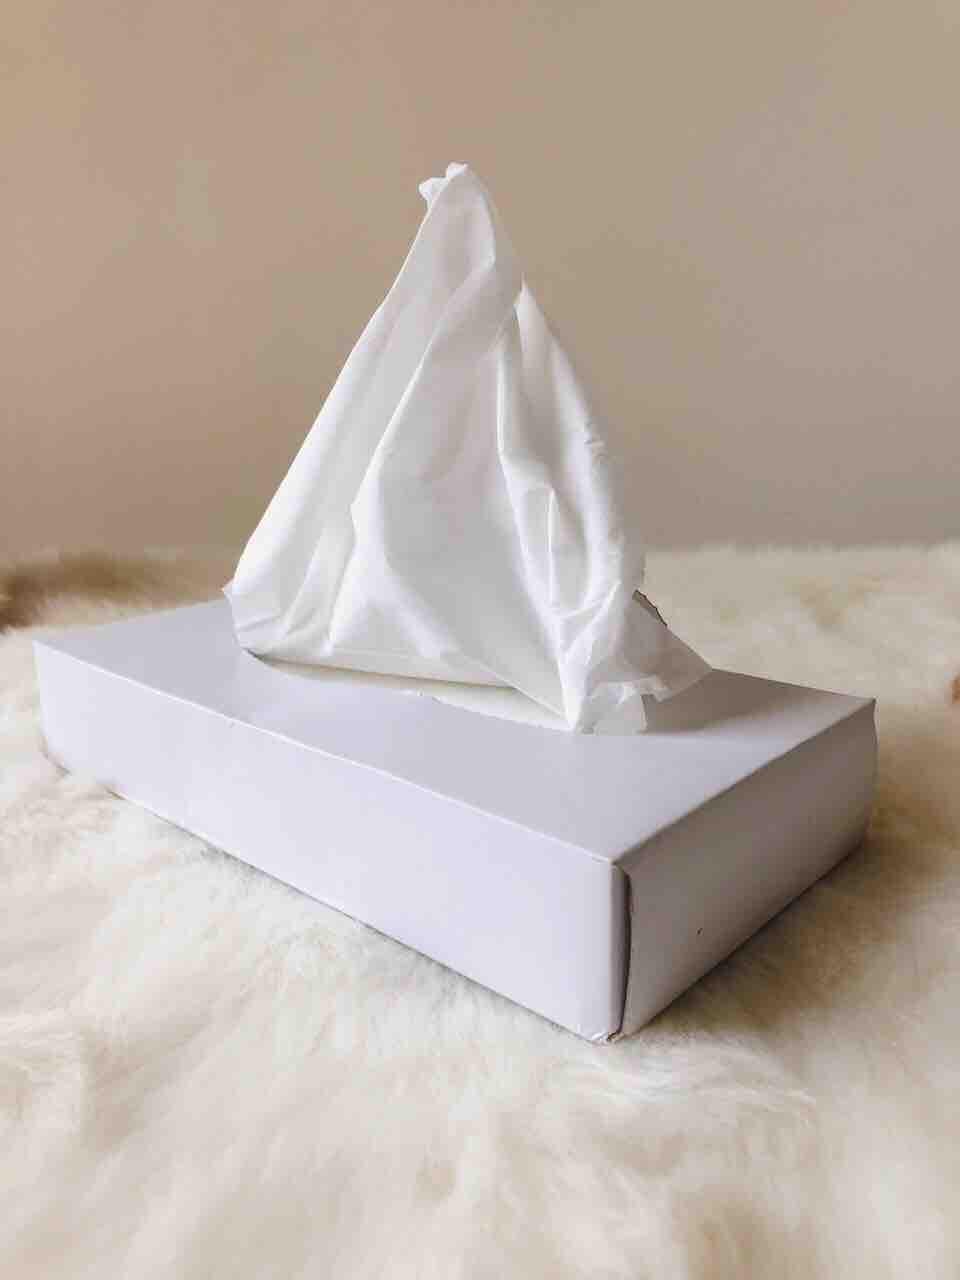 Facial Tissue (180 Pulls In A Box) By Yuyo Industrial Supplies.